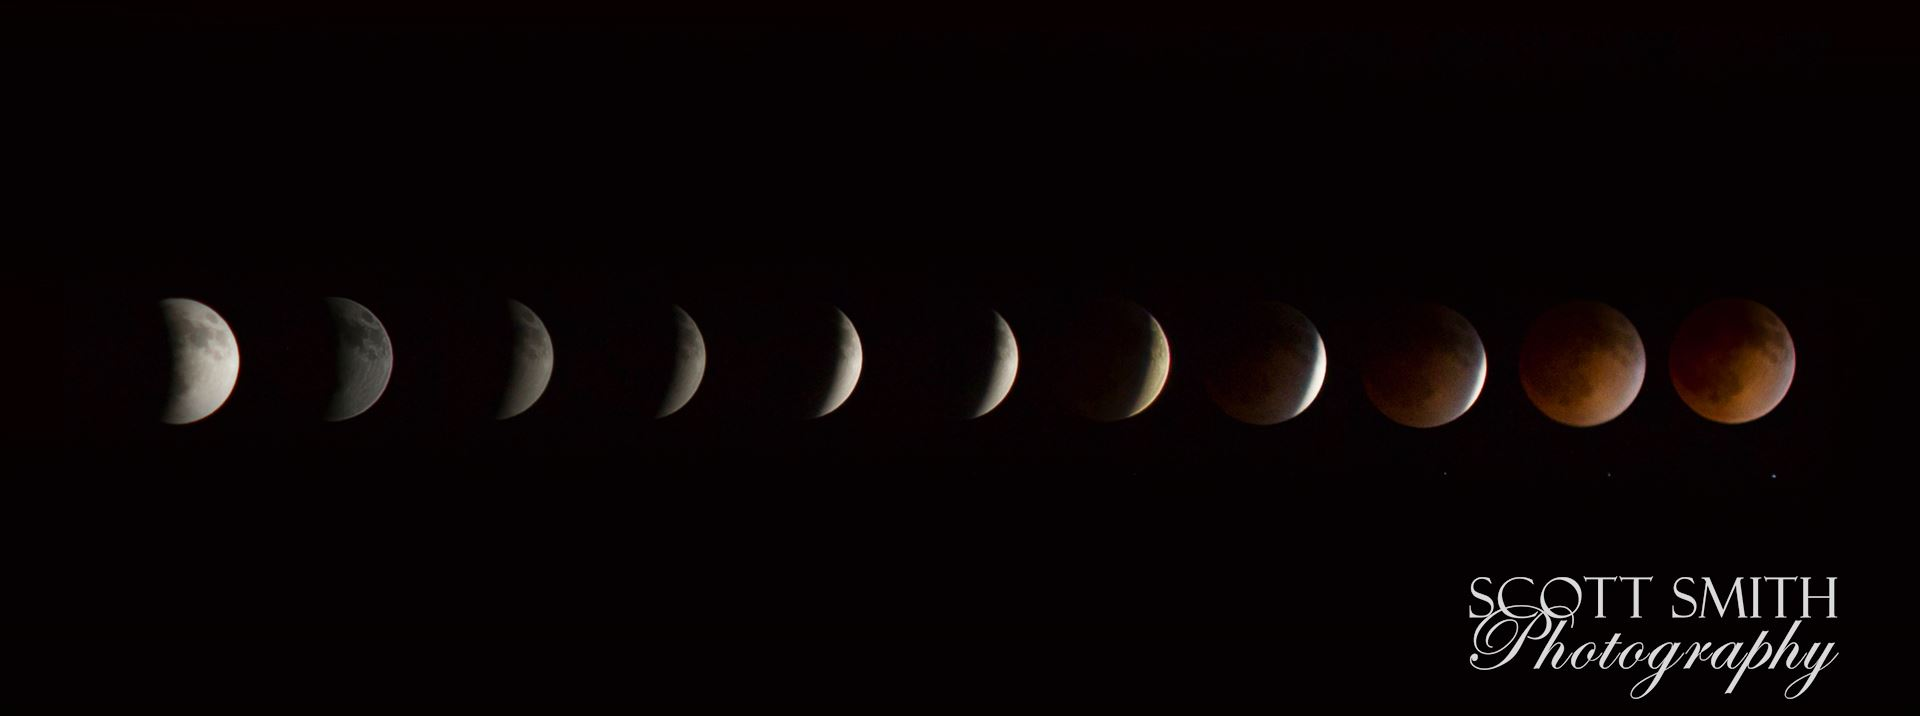 2014 Blood Moon CollageLunar eclipse and blood moon, 4/15/2014.  Shot as separate frames with a 100mm Canon f/2.8 and assembled in Photoshop.